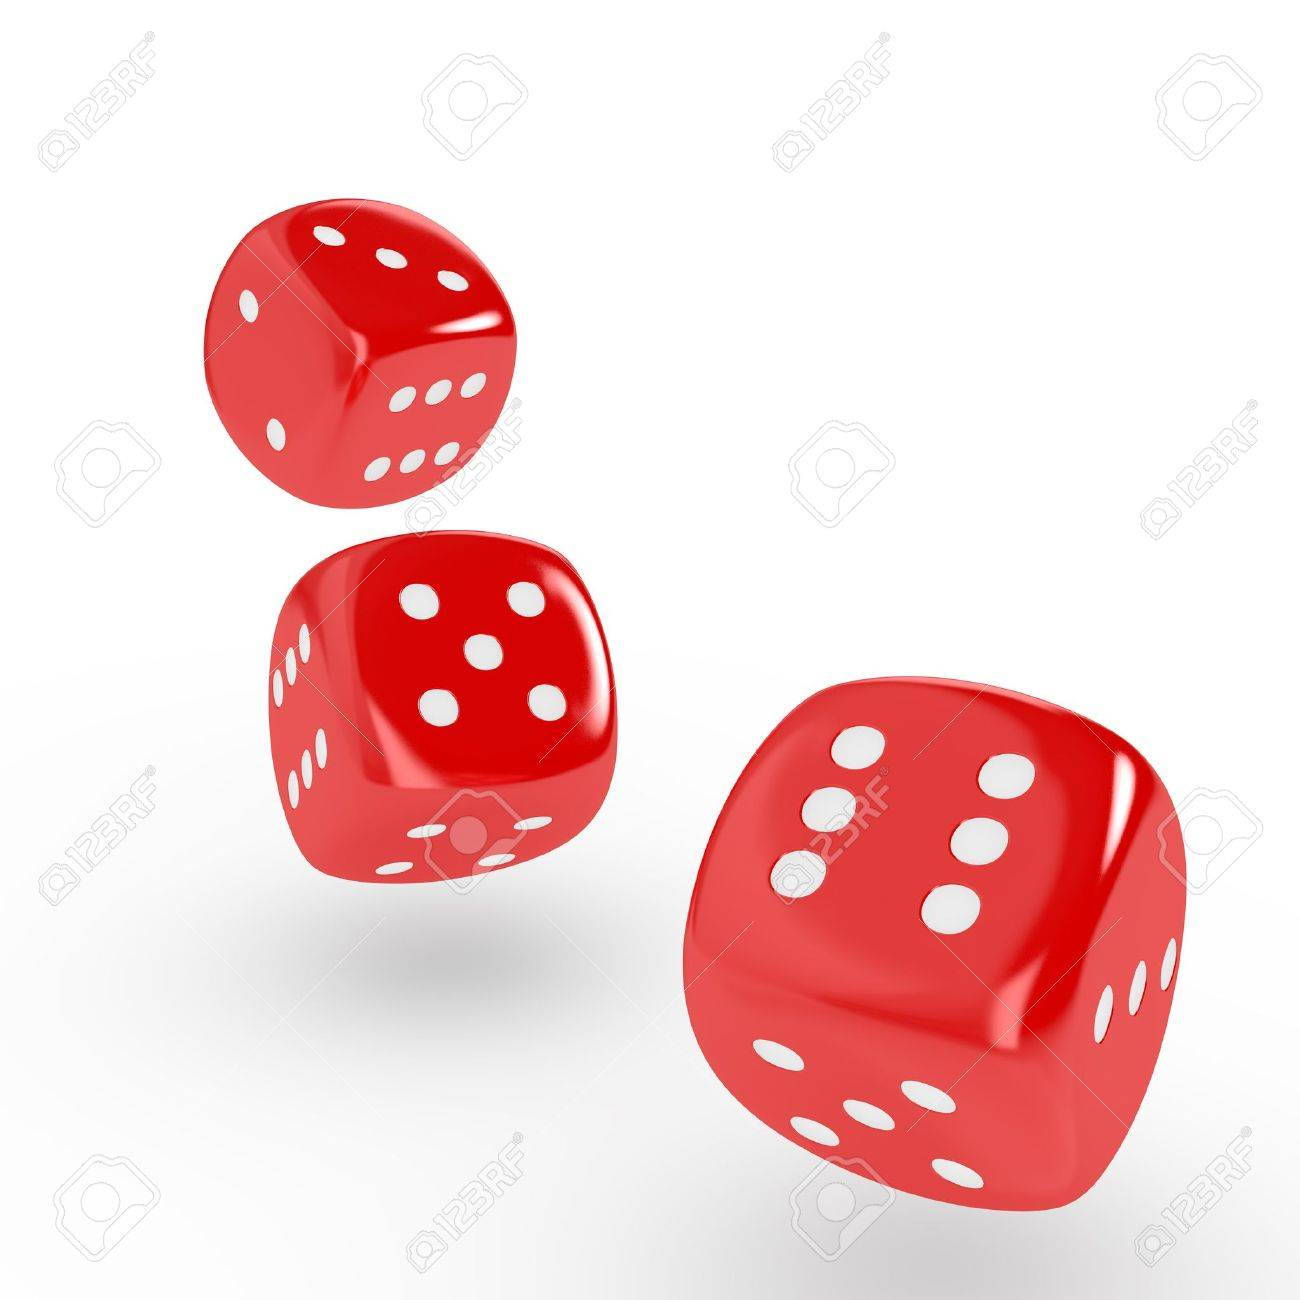 Three red dice on white background  Computer generated image Stock Photo - 14006917